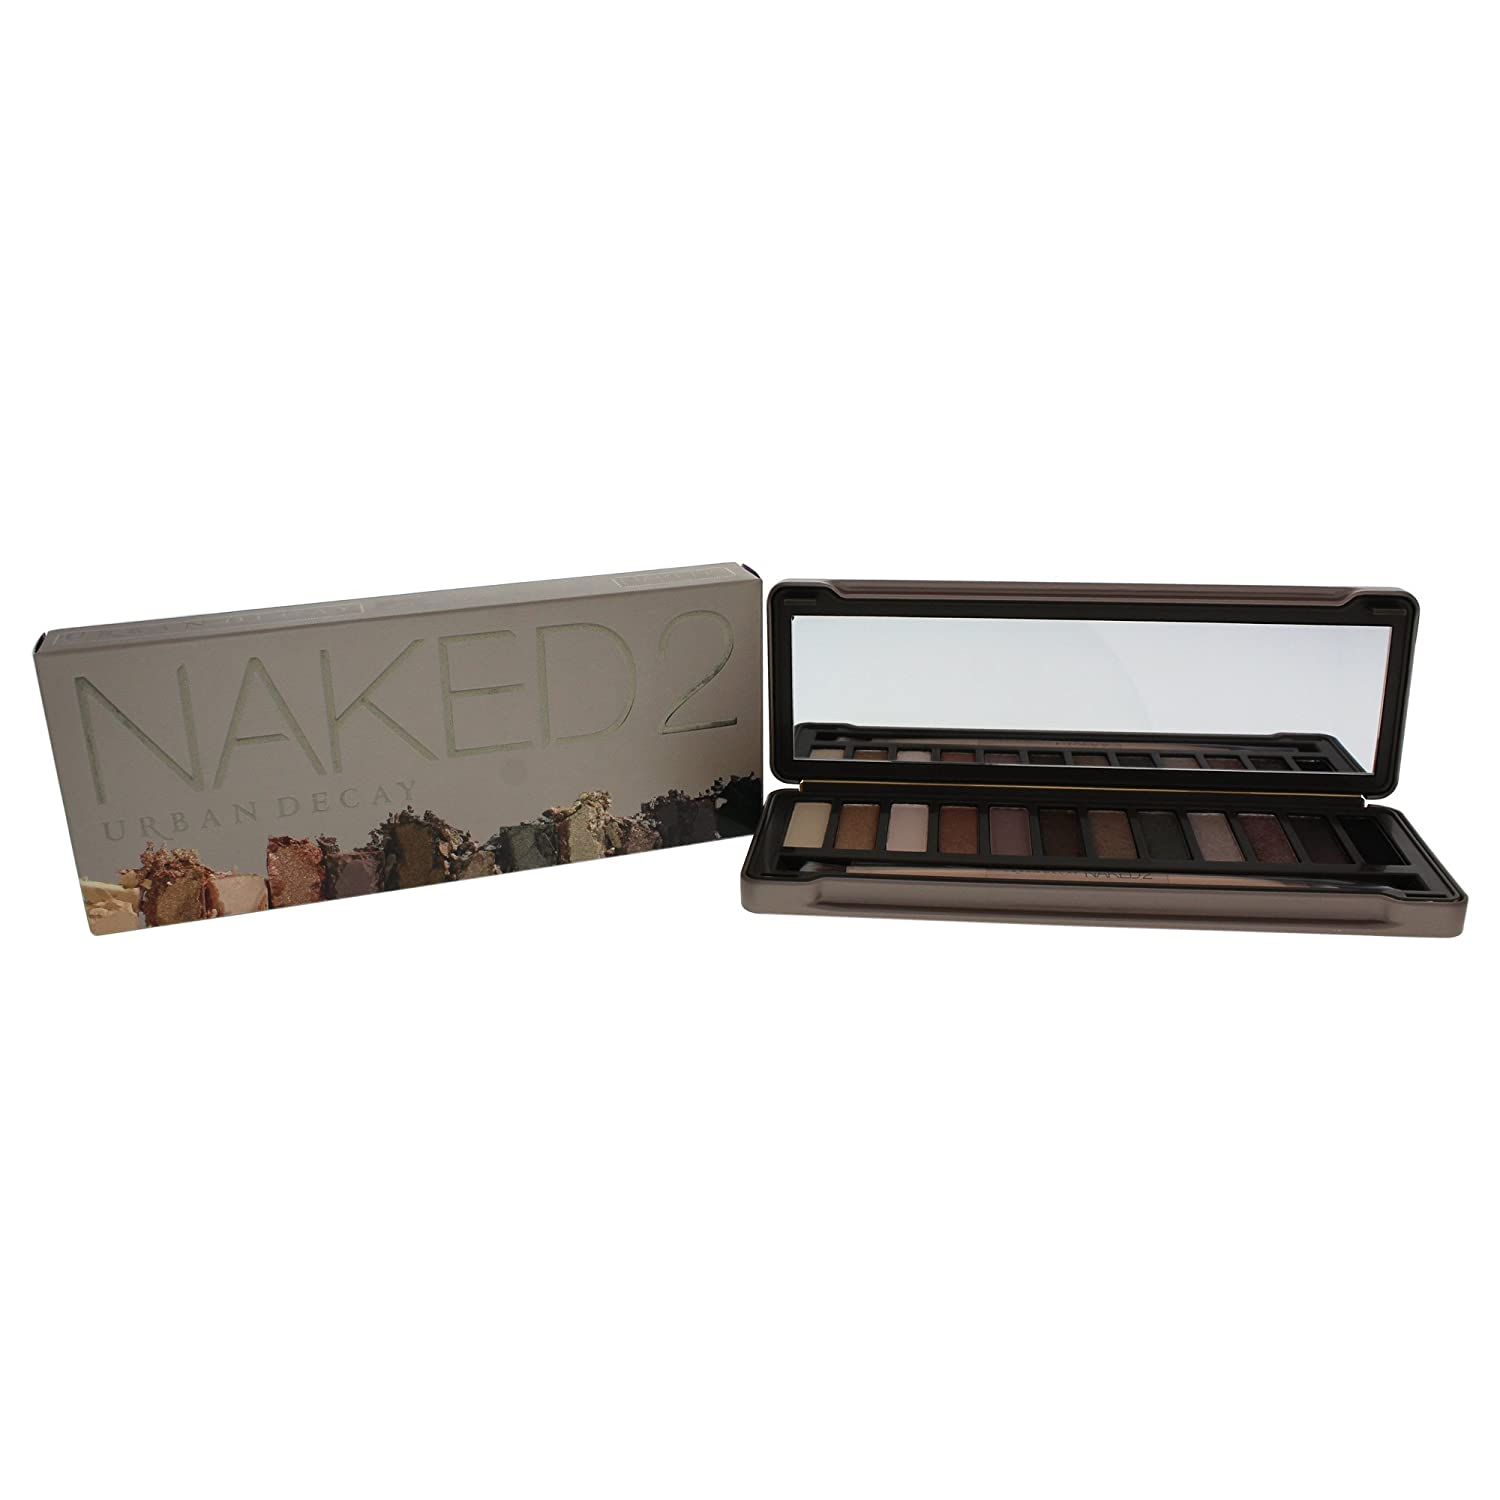 Urban Decay Naked 2 Eyeshadow Palette, 1 Count Mainspring America Inc. DBA Direct Cosmetics naked2